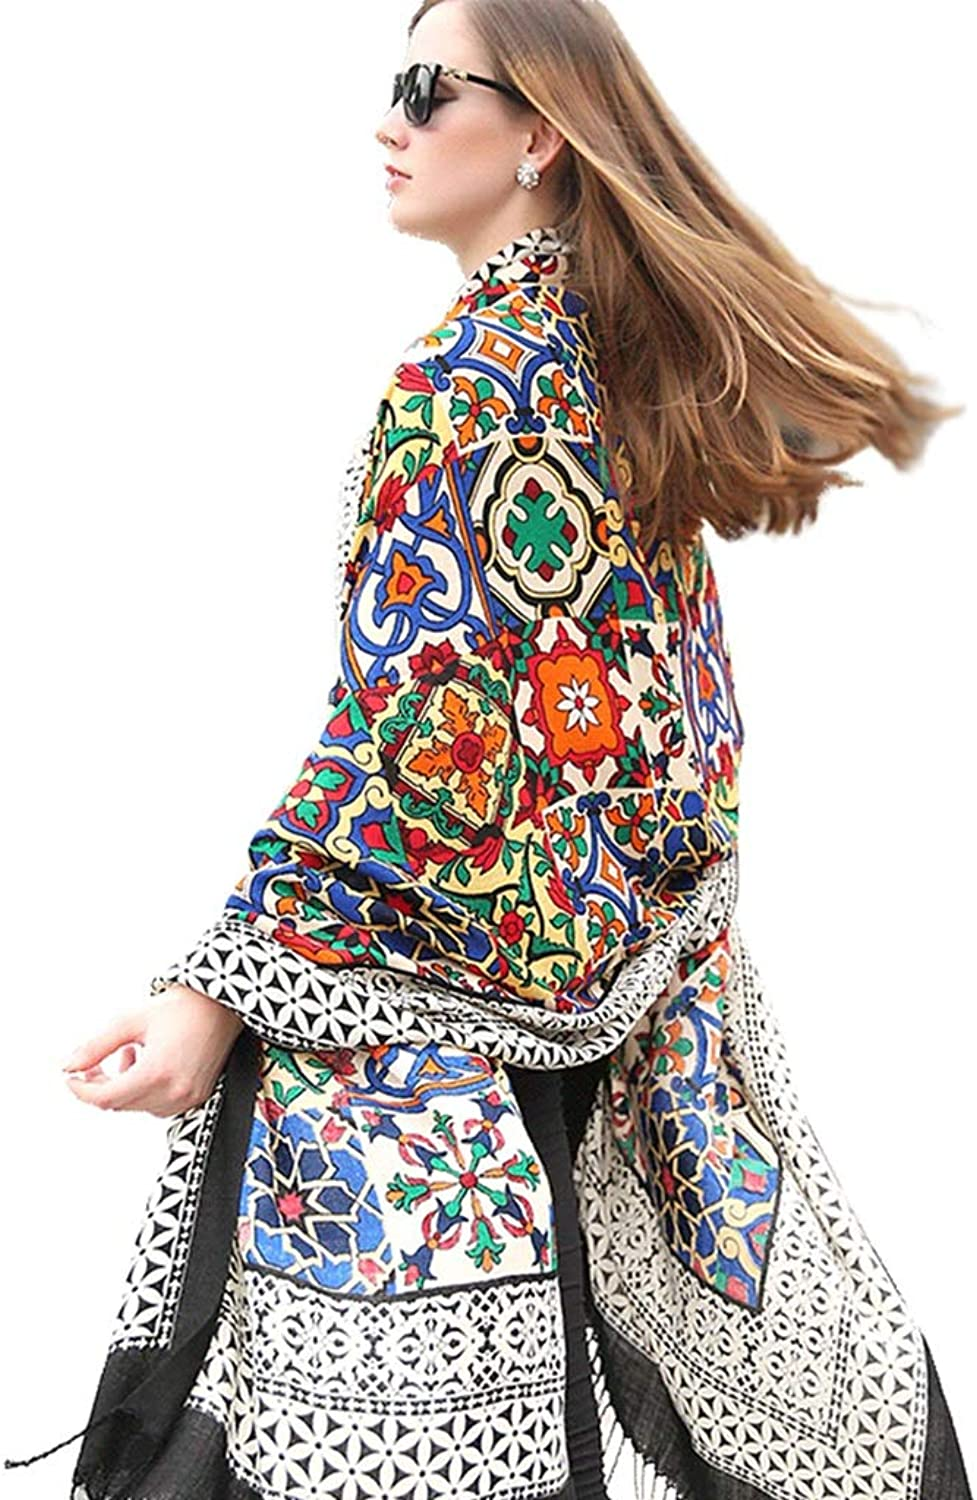 Cold Weather Scarves Scarf Ladies Scarf Ladies Shawl Wrap Long Shawl National Wind Travel Cape Cape Big Shawl color Print Soft Scarf New Year Gift Wraps (color   Rainbow color, Size   245  110cm)